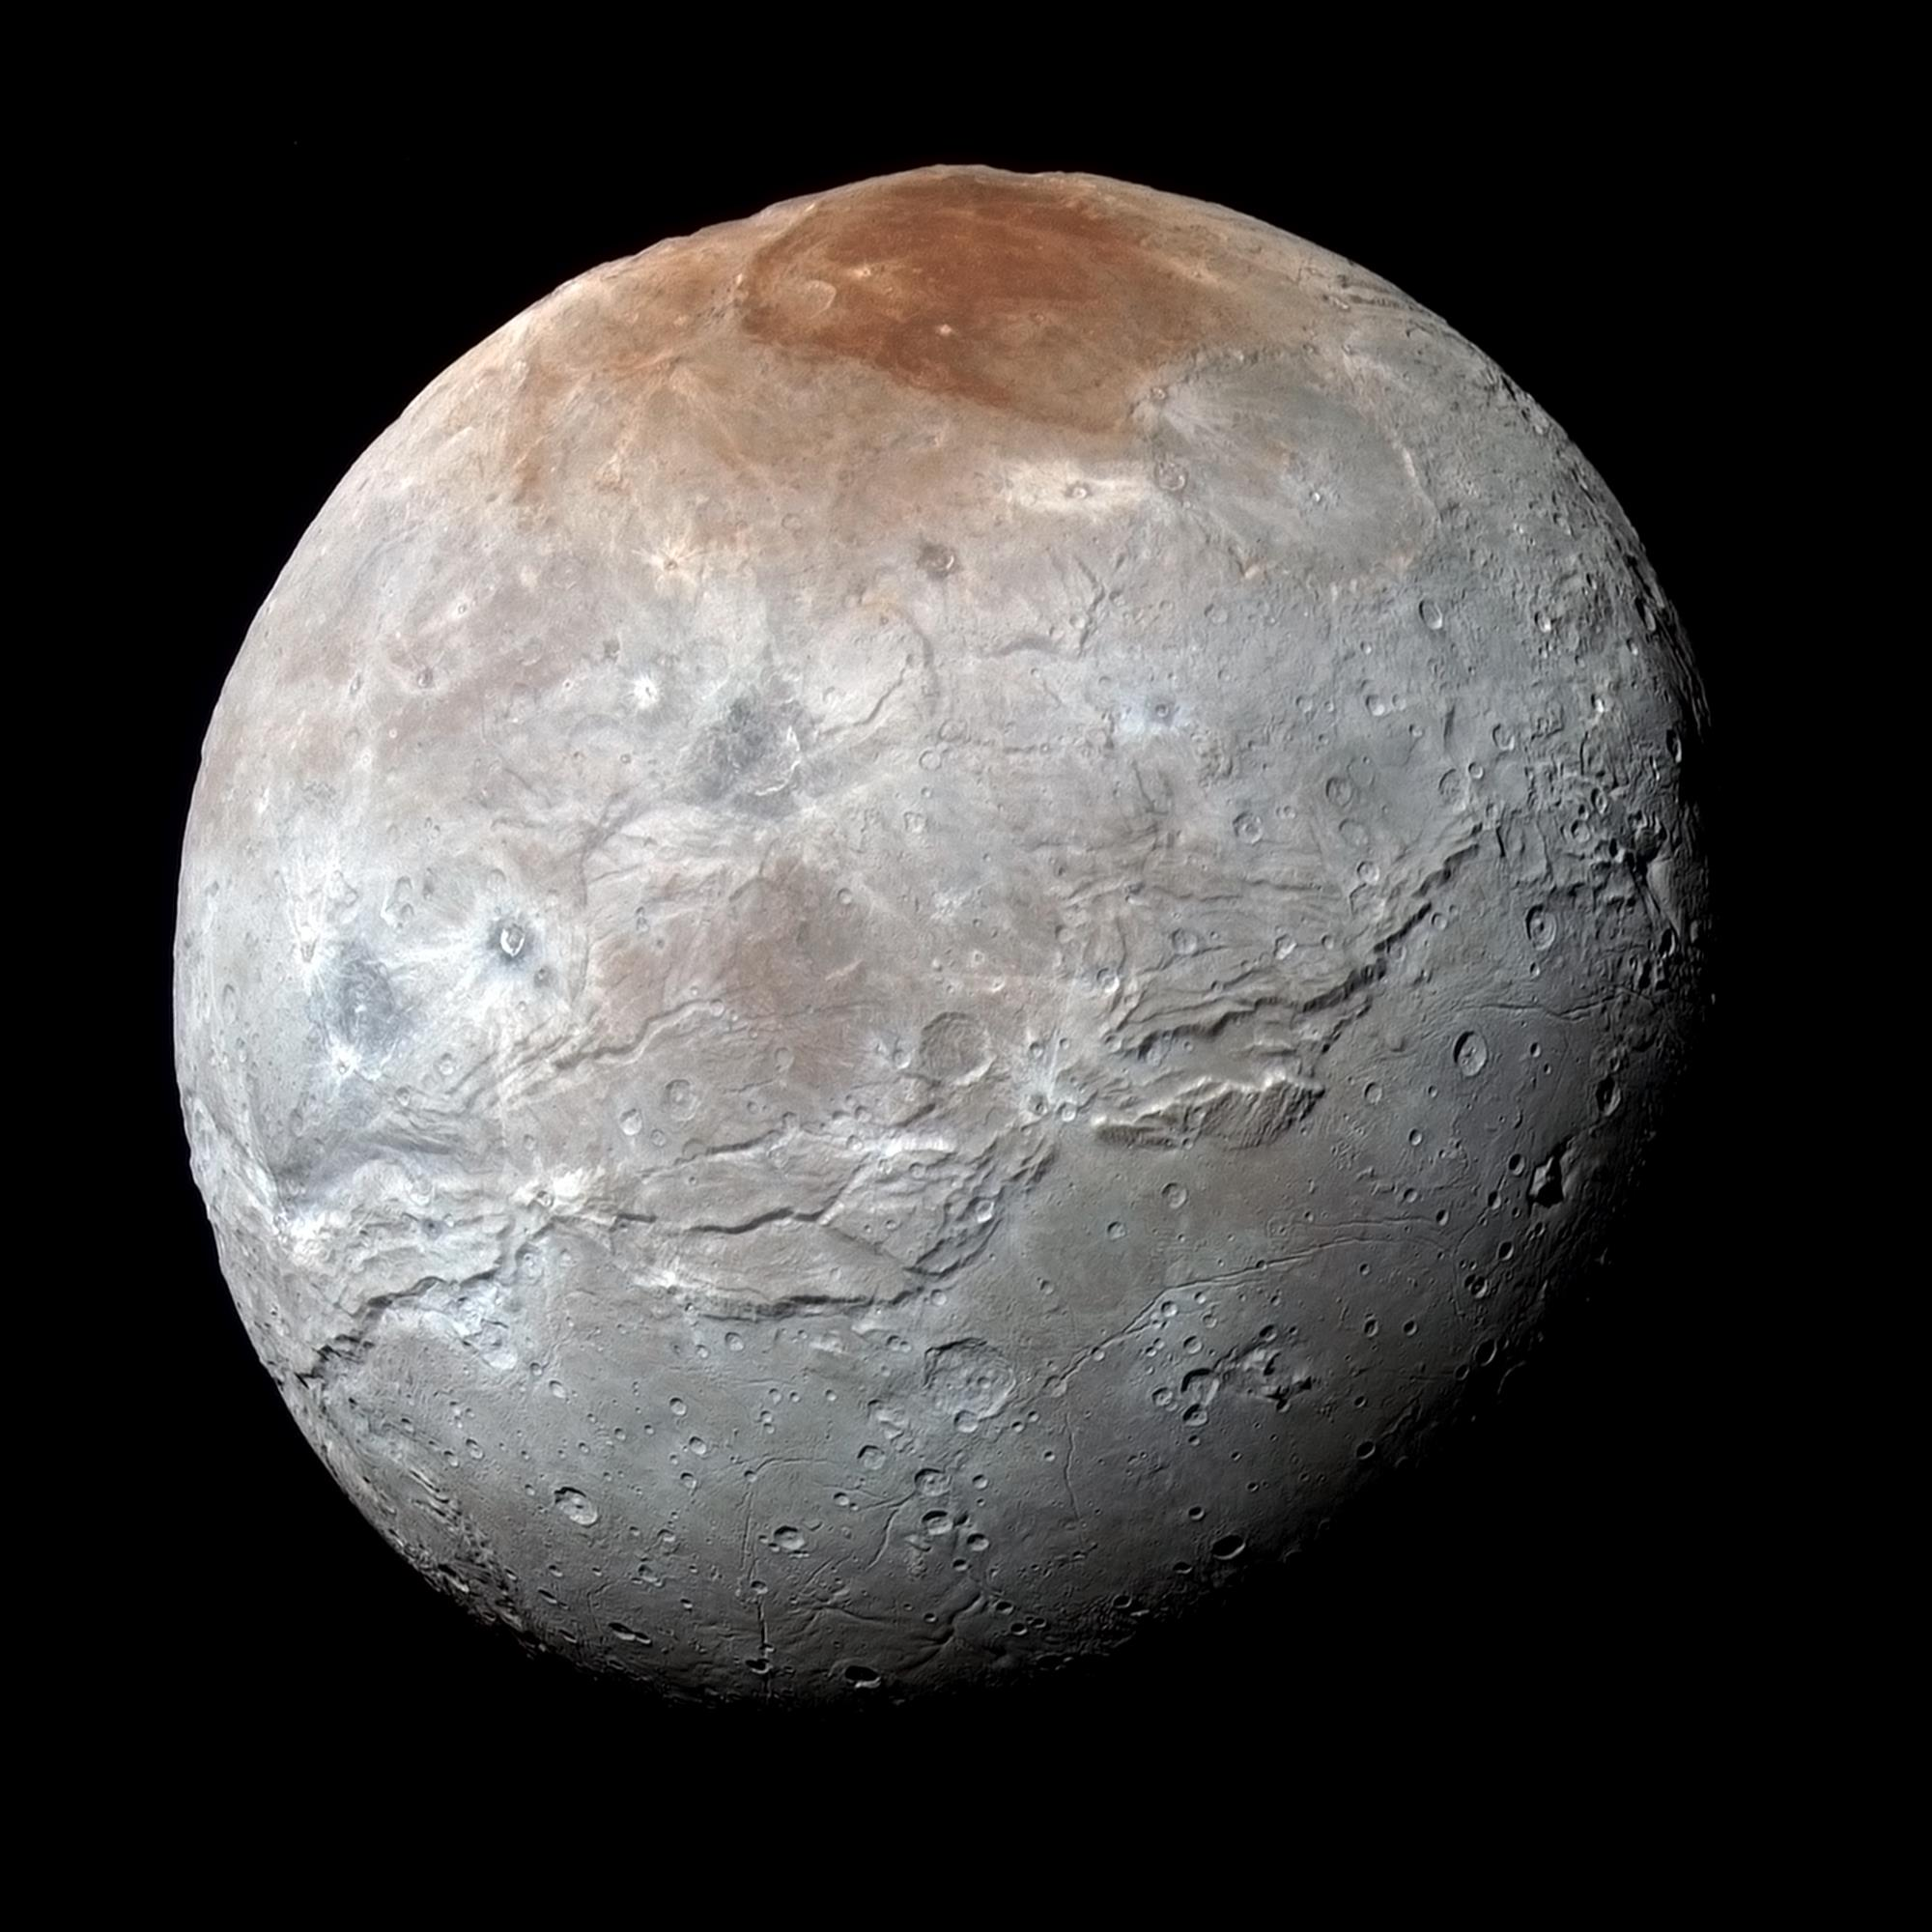 Charon from New Horizons spacecraft (NASA/JPL)